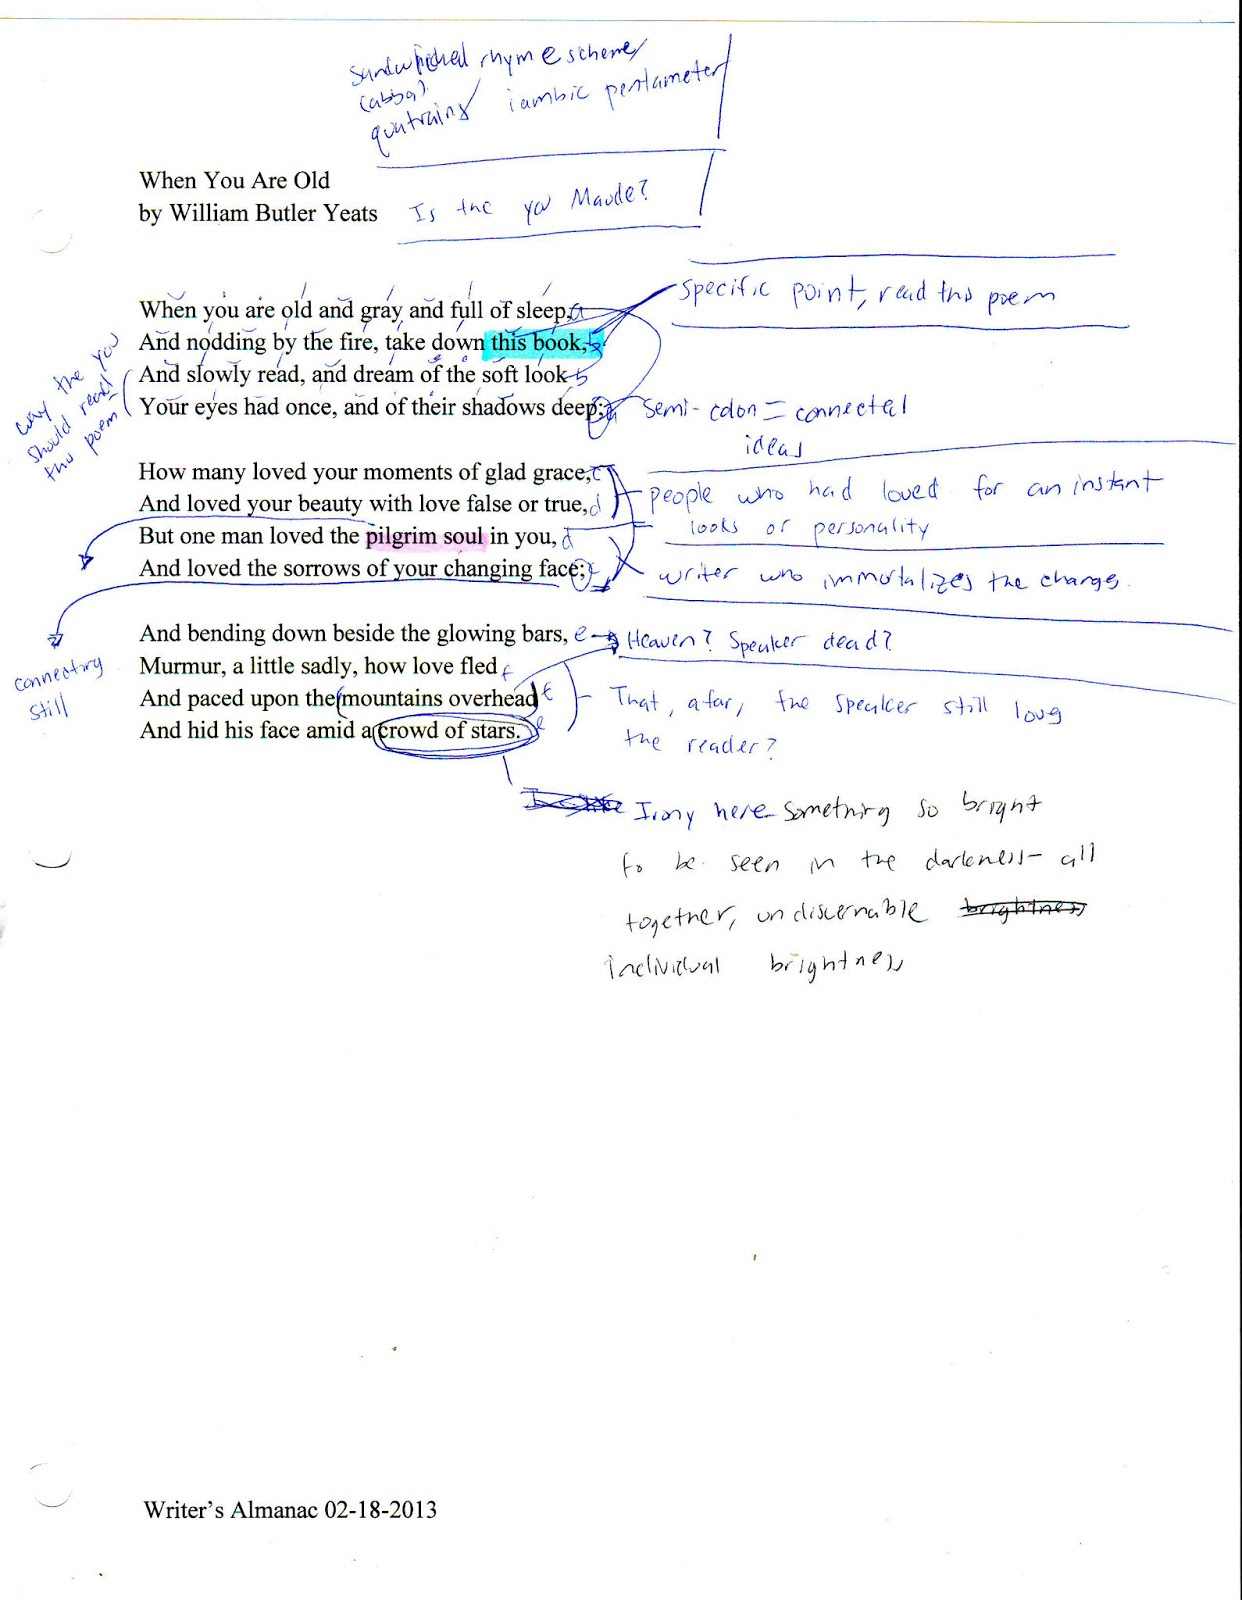 Examples List on Shakespeare Sonnet 130